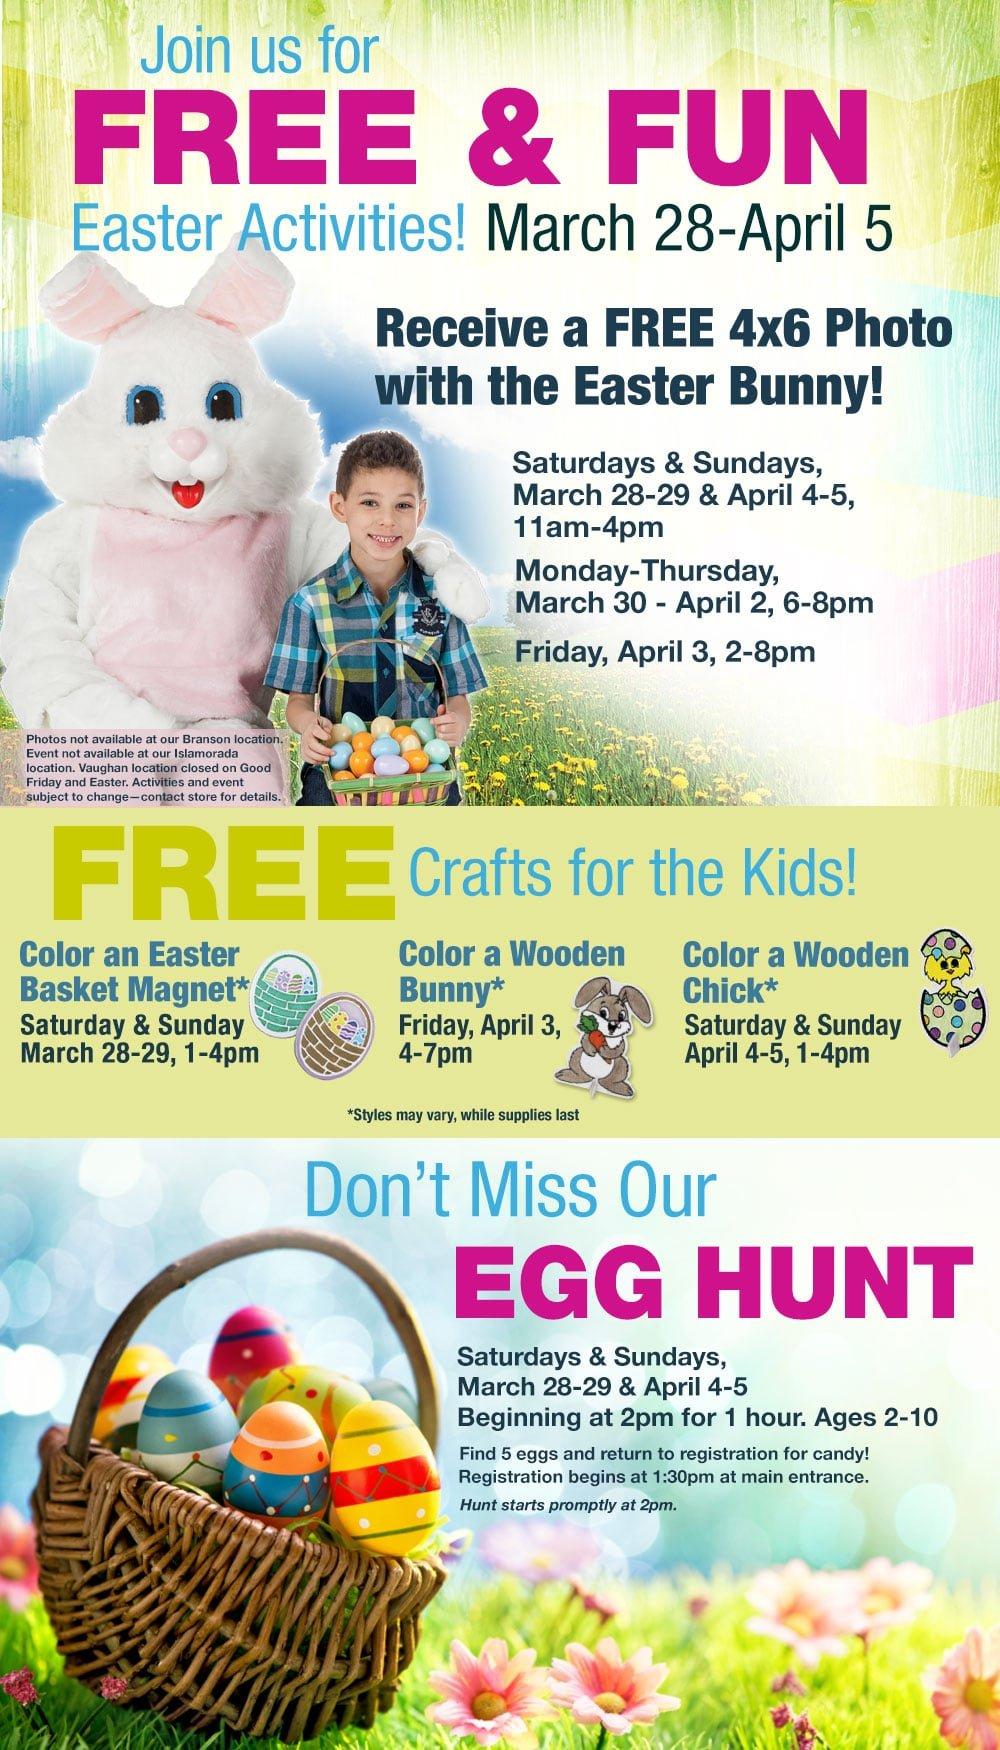 Free Easter Activities At Bass Pro Shop on March 28-29 and April 4-5